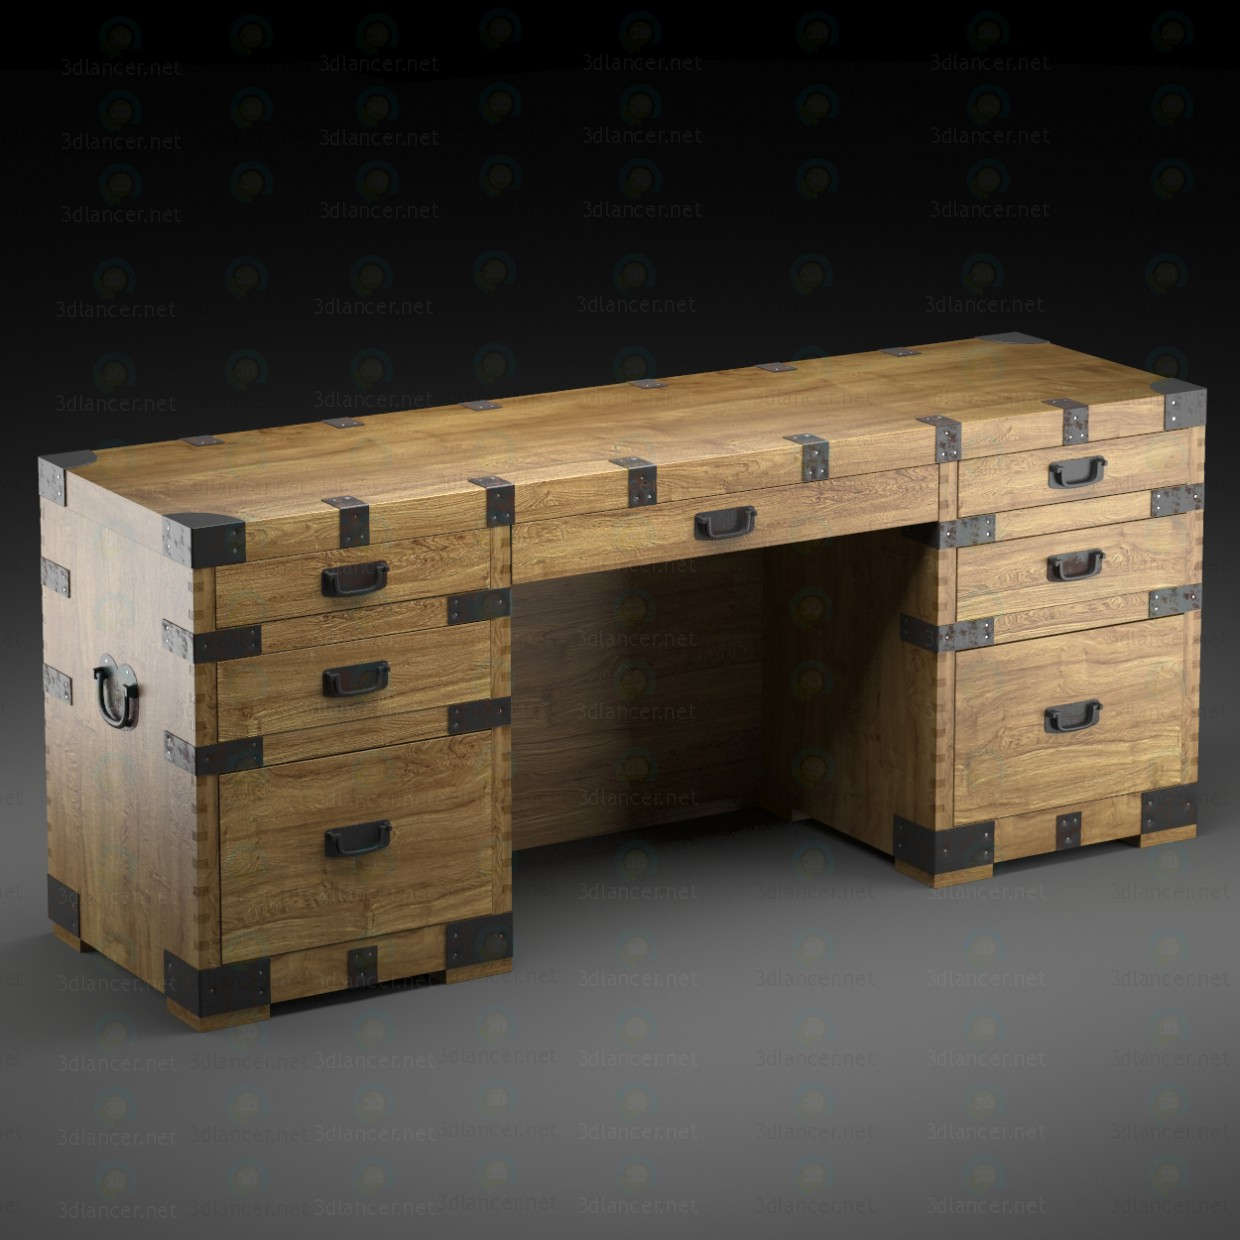 3d HEIRLOOM SILVER CHEST desk Restoration Hardware модель купити - зображення